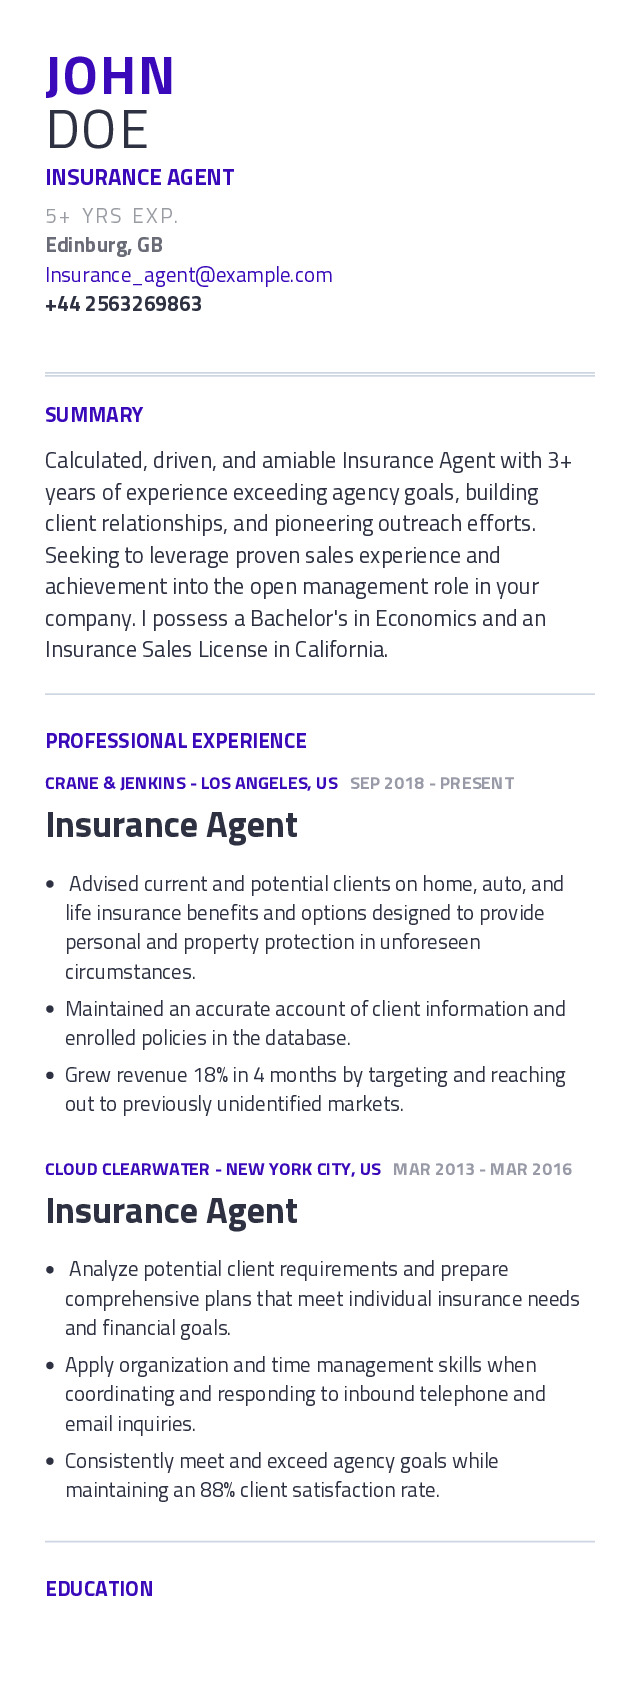 insurance agent resume example with content sample craftmycv life ats review lesson for Resume Life Insurance Agent Resume Sample